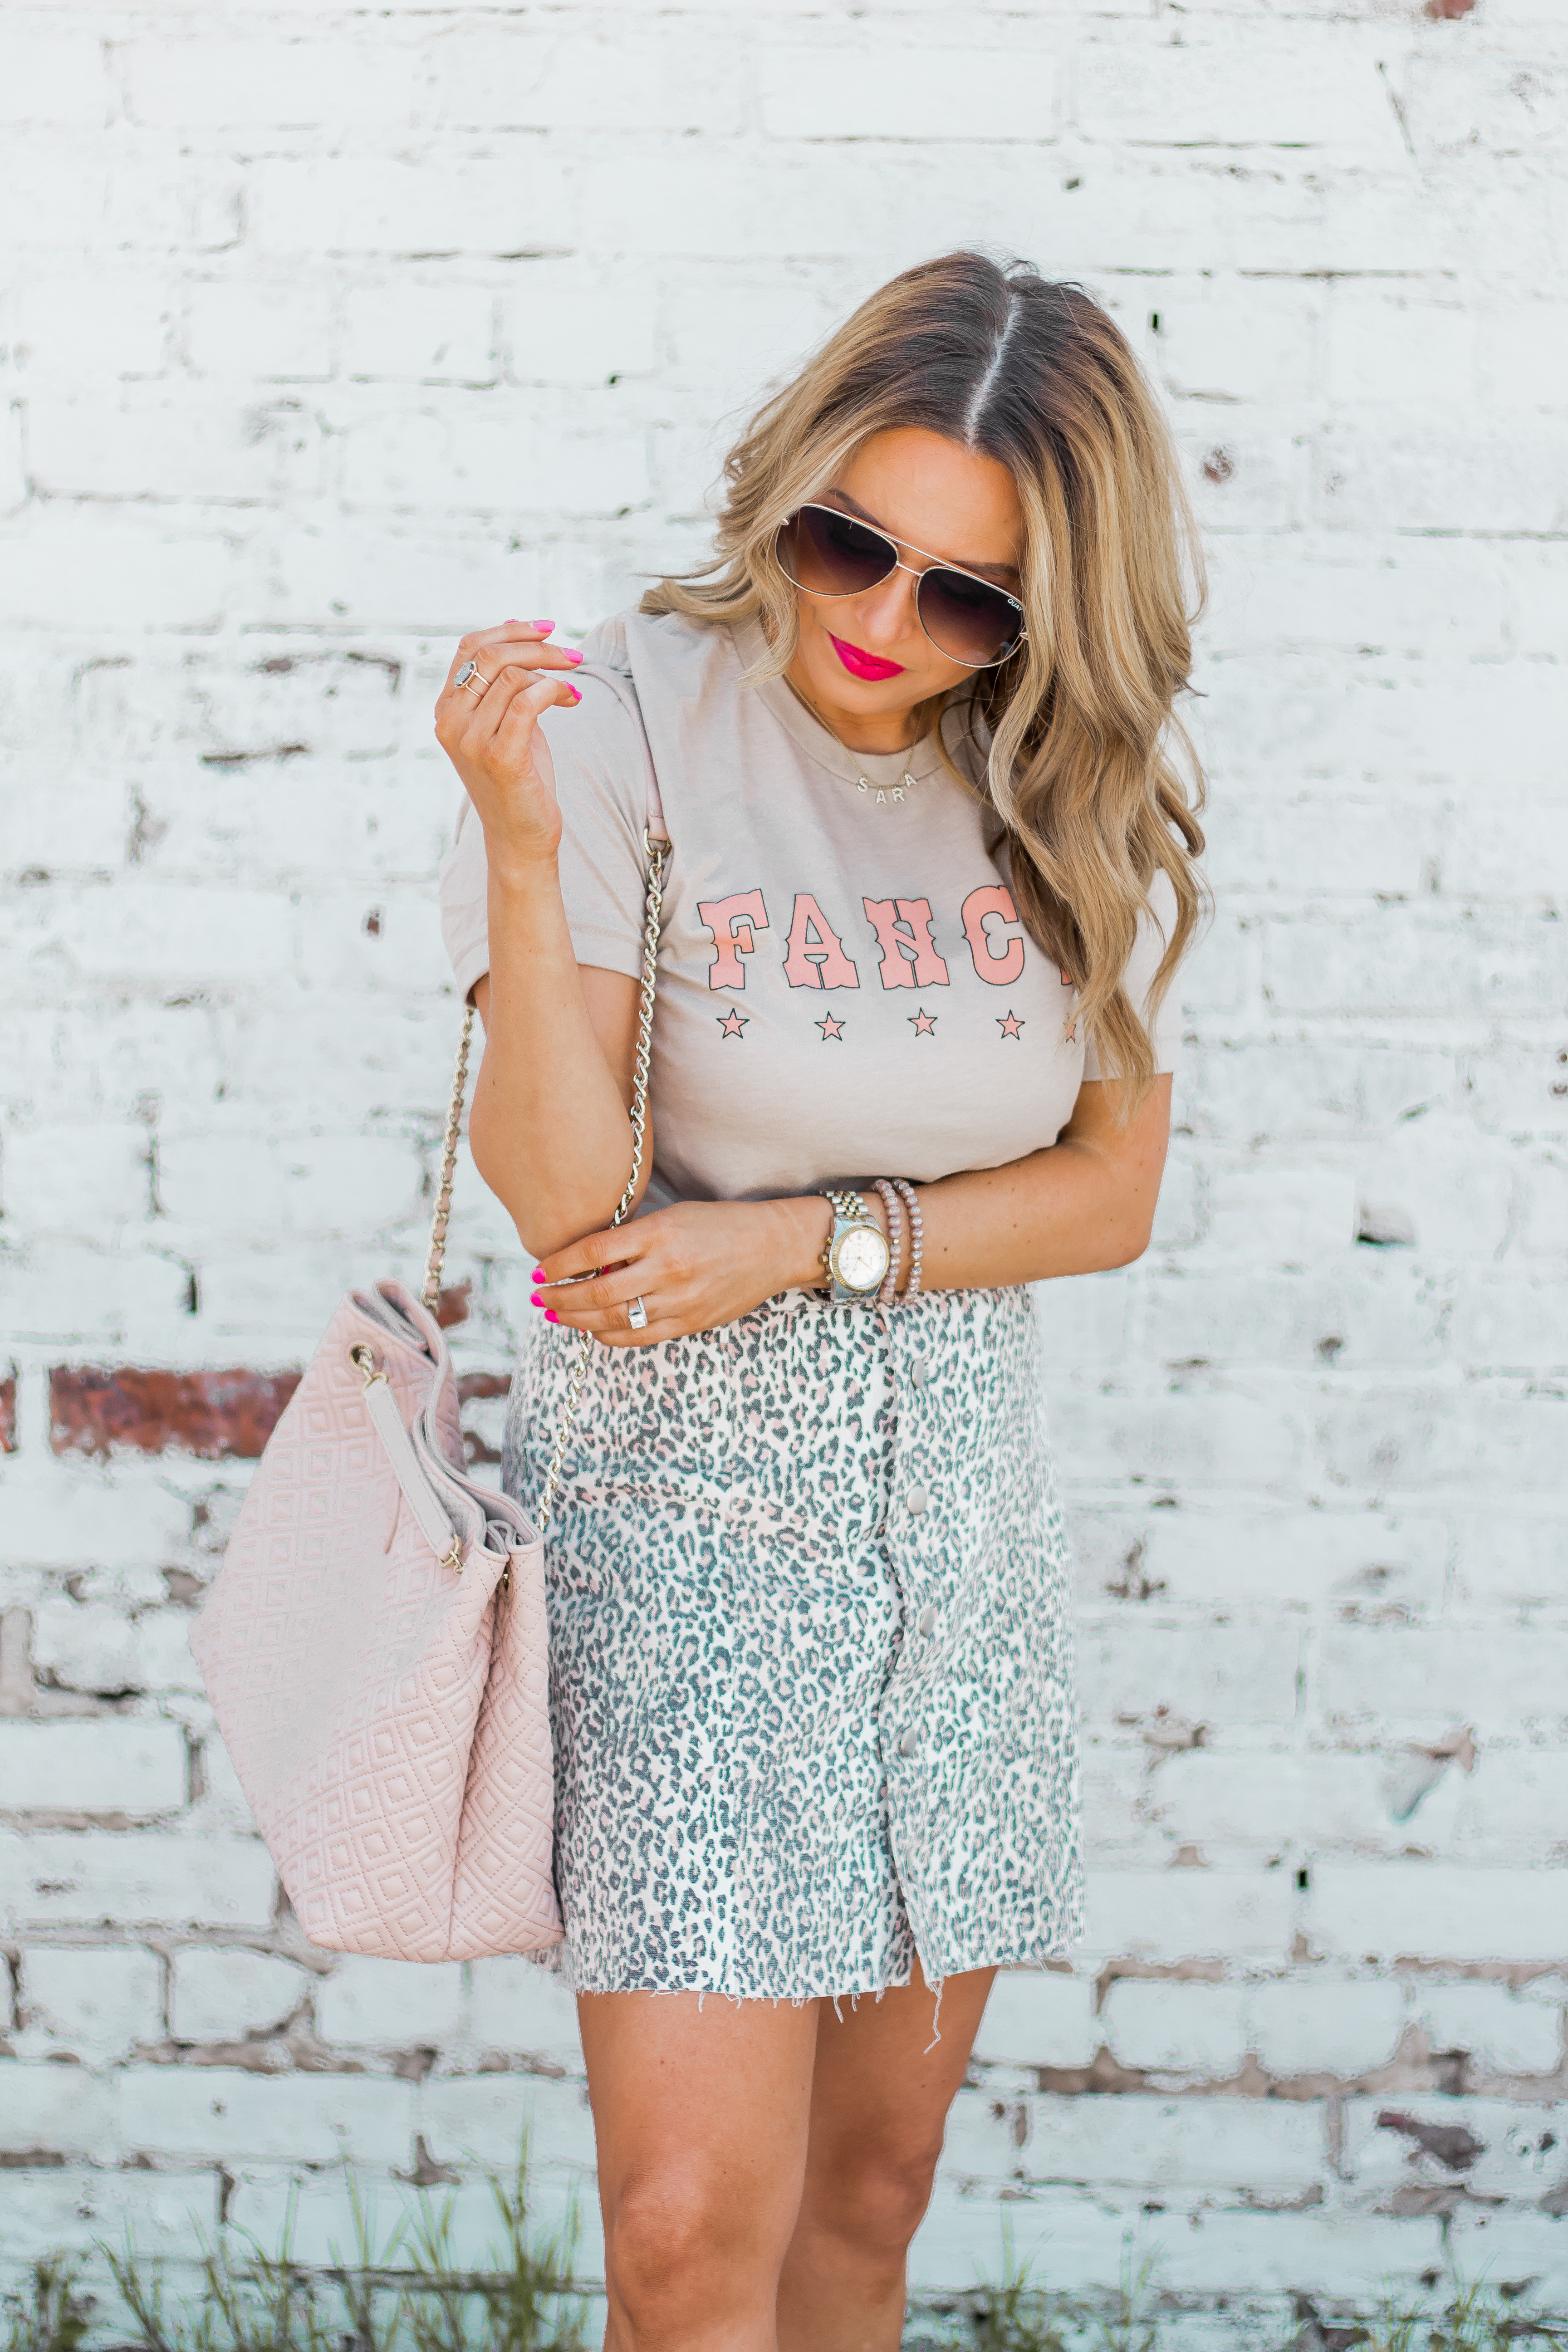 Fancy Graphic Tee-Leopard Skirt-Sugar Boutique-$250 Gift Card Giveaway-Tory Burch Fleming Bag-Quay Sunglasses-Sabby Style-Omaha Blogger-Women's Fashion-Spring Fashion-Summer Outfit-14